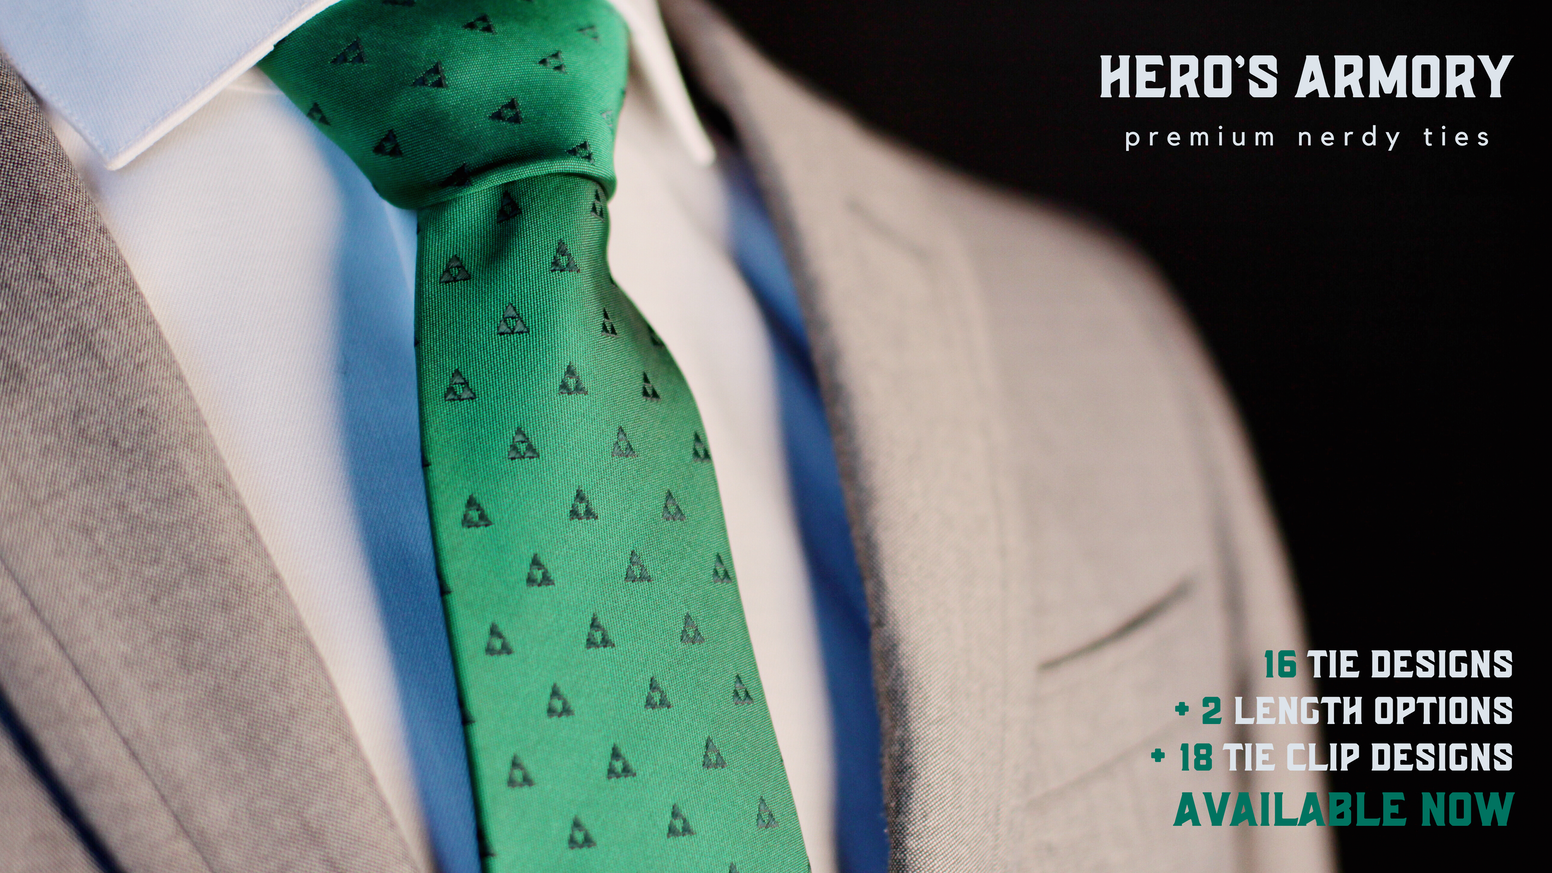 Nerdy ties inspired by your favorite stories (such as Zelda, Star Wars & Lord of the Rings) to accompany your HERO'S ARMORY tie clips.